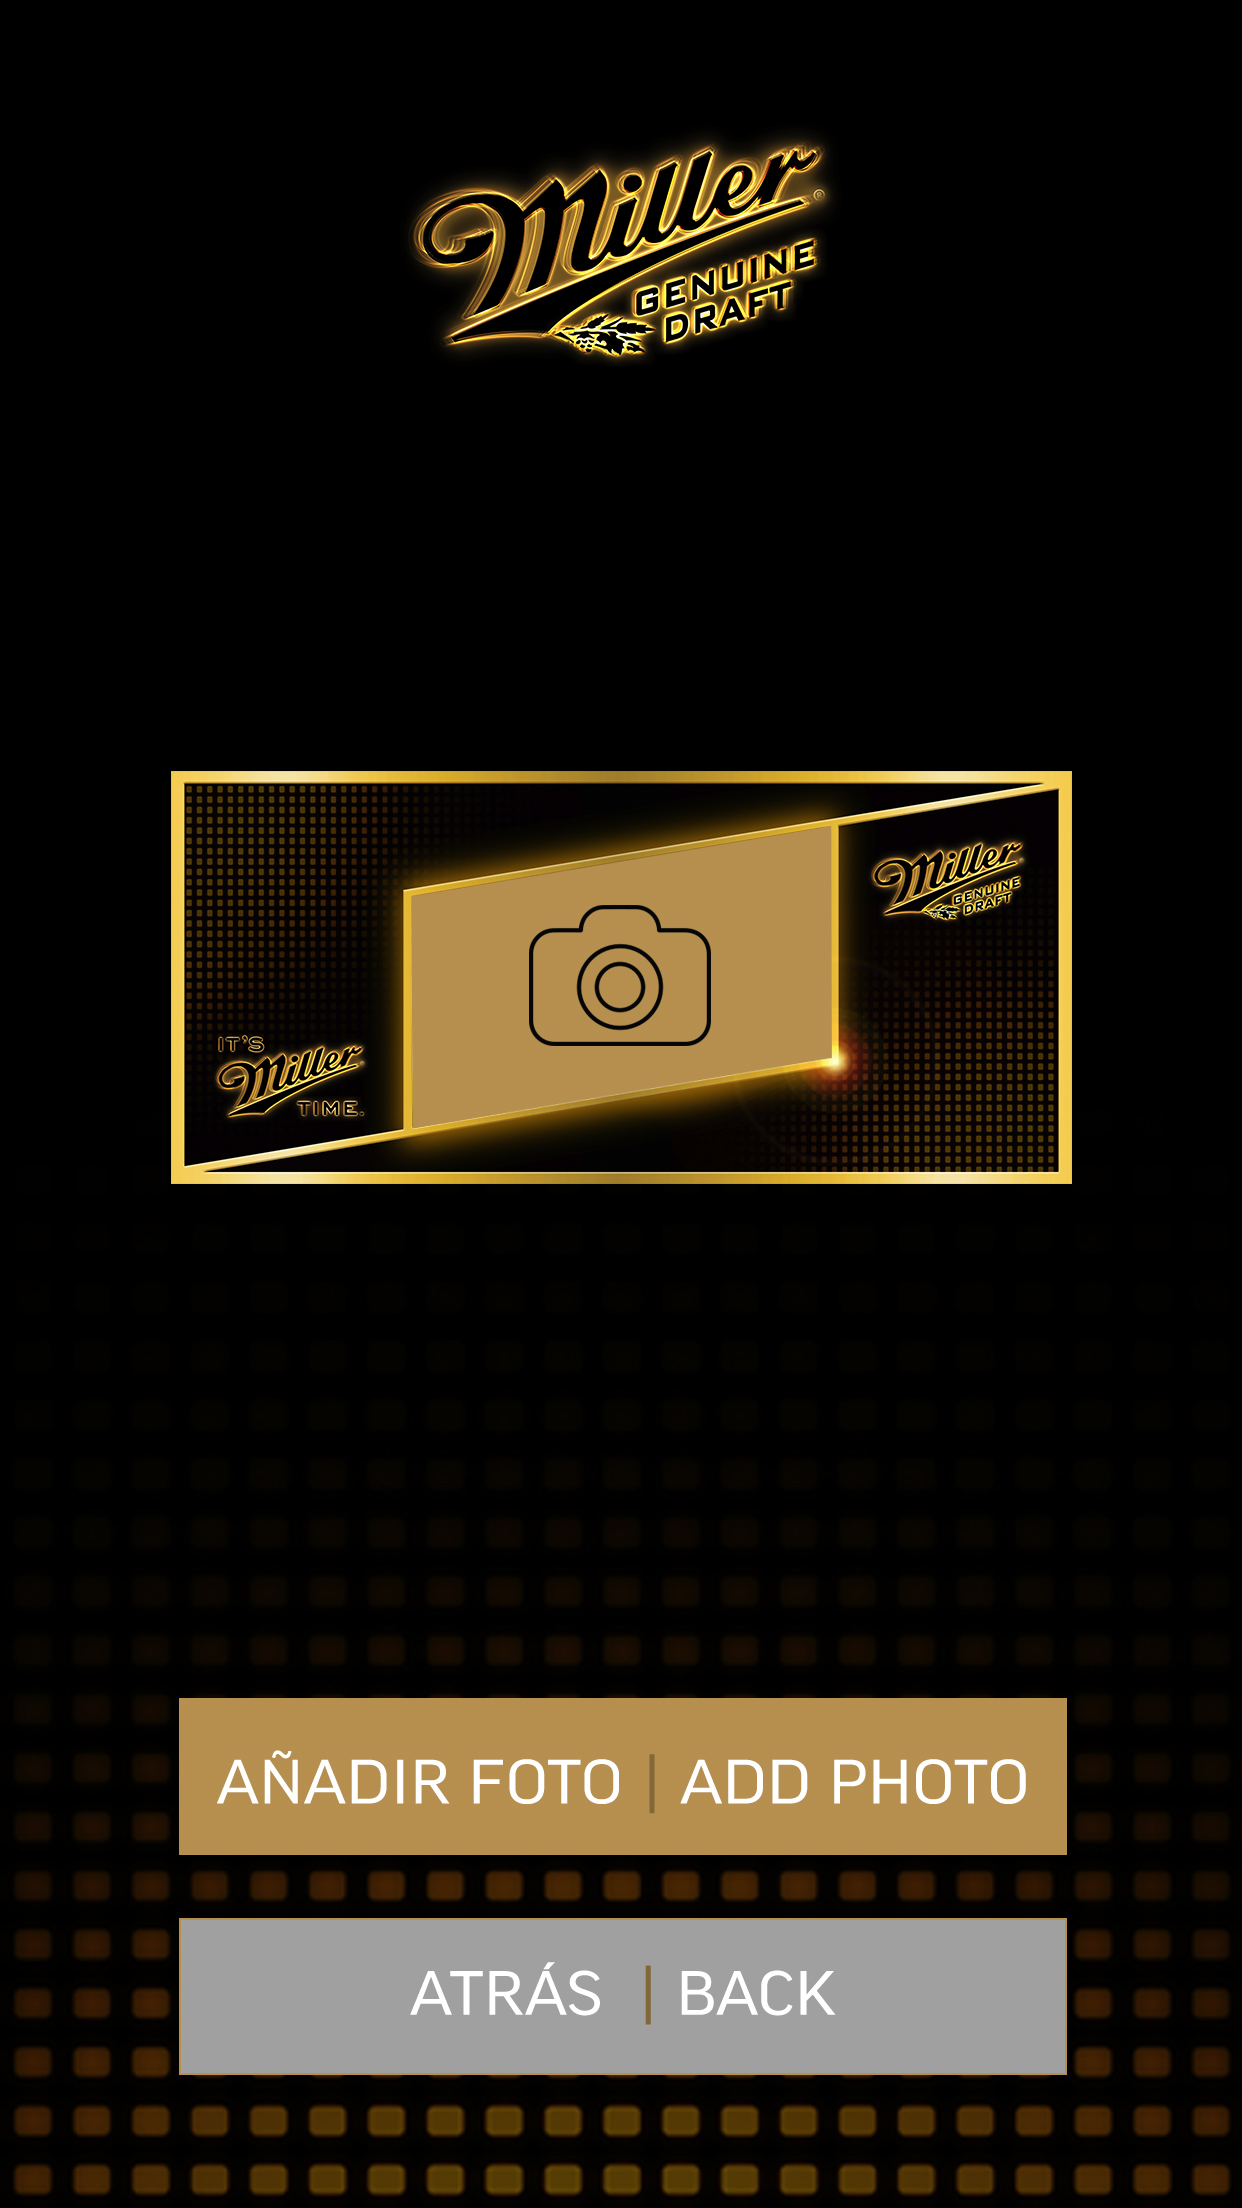 Miller_PersonalizedLabel_Mobile_AddPhoto.jpg